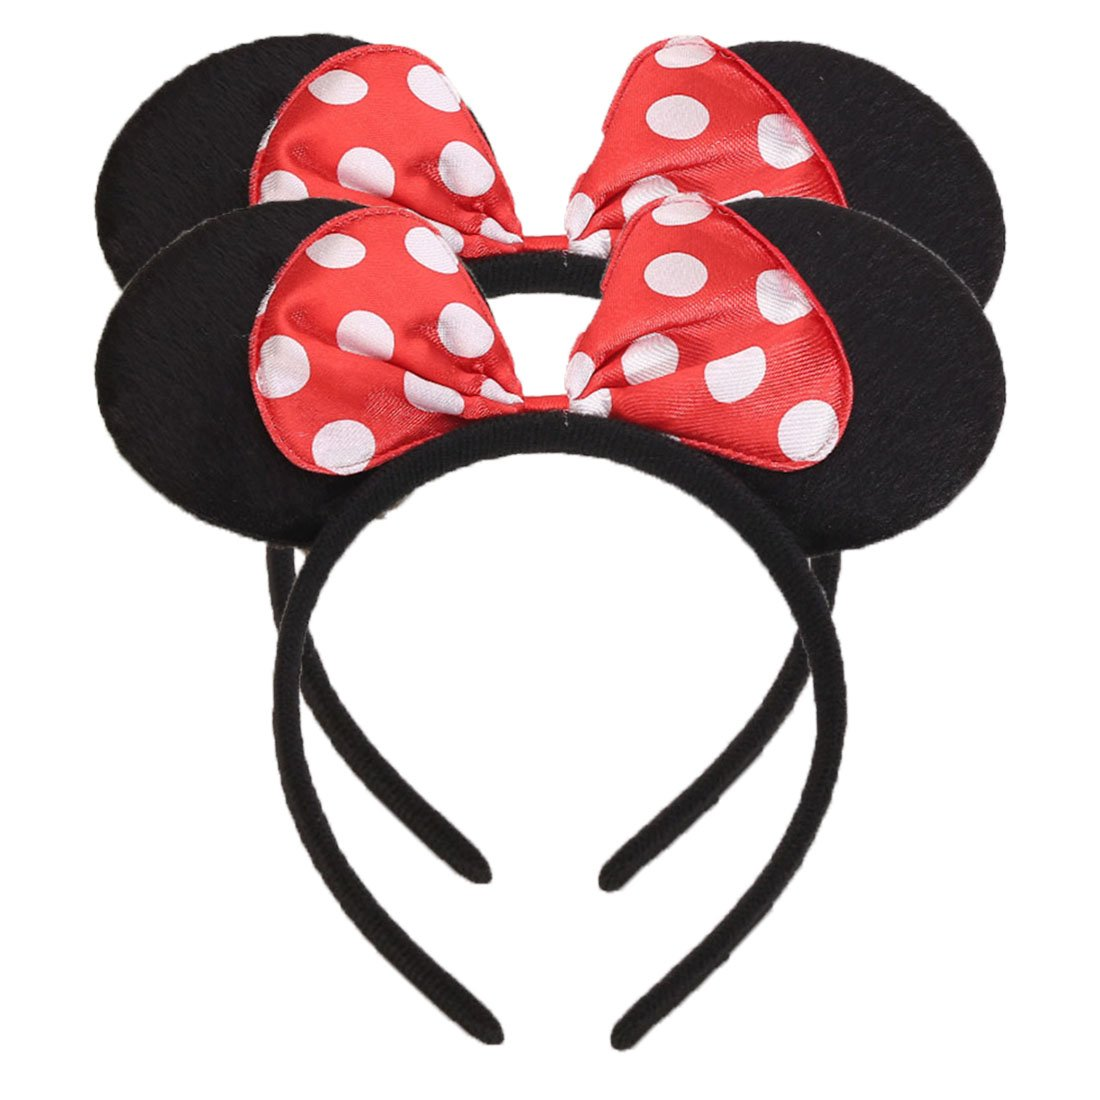 Set of 2 Mickey Minnie Mouse Ears Headband Boys Girls Birthday Party Mom Hairs Accessories Baby Shower Headwear Halloween Party Decorations Costume Deluxe Fabric Ears with Dots Bow (Pink) Mabingo